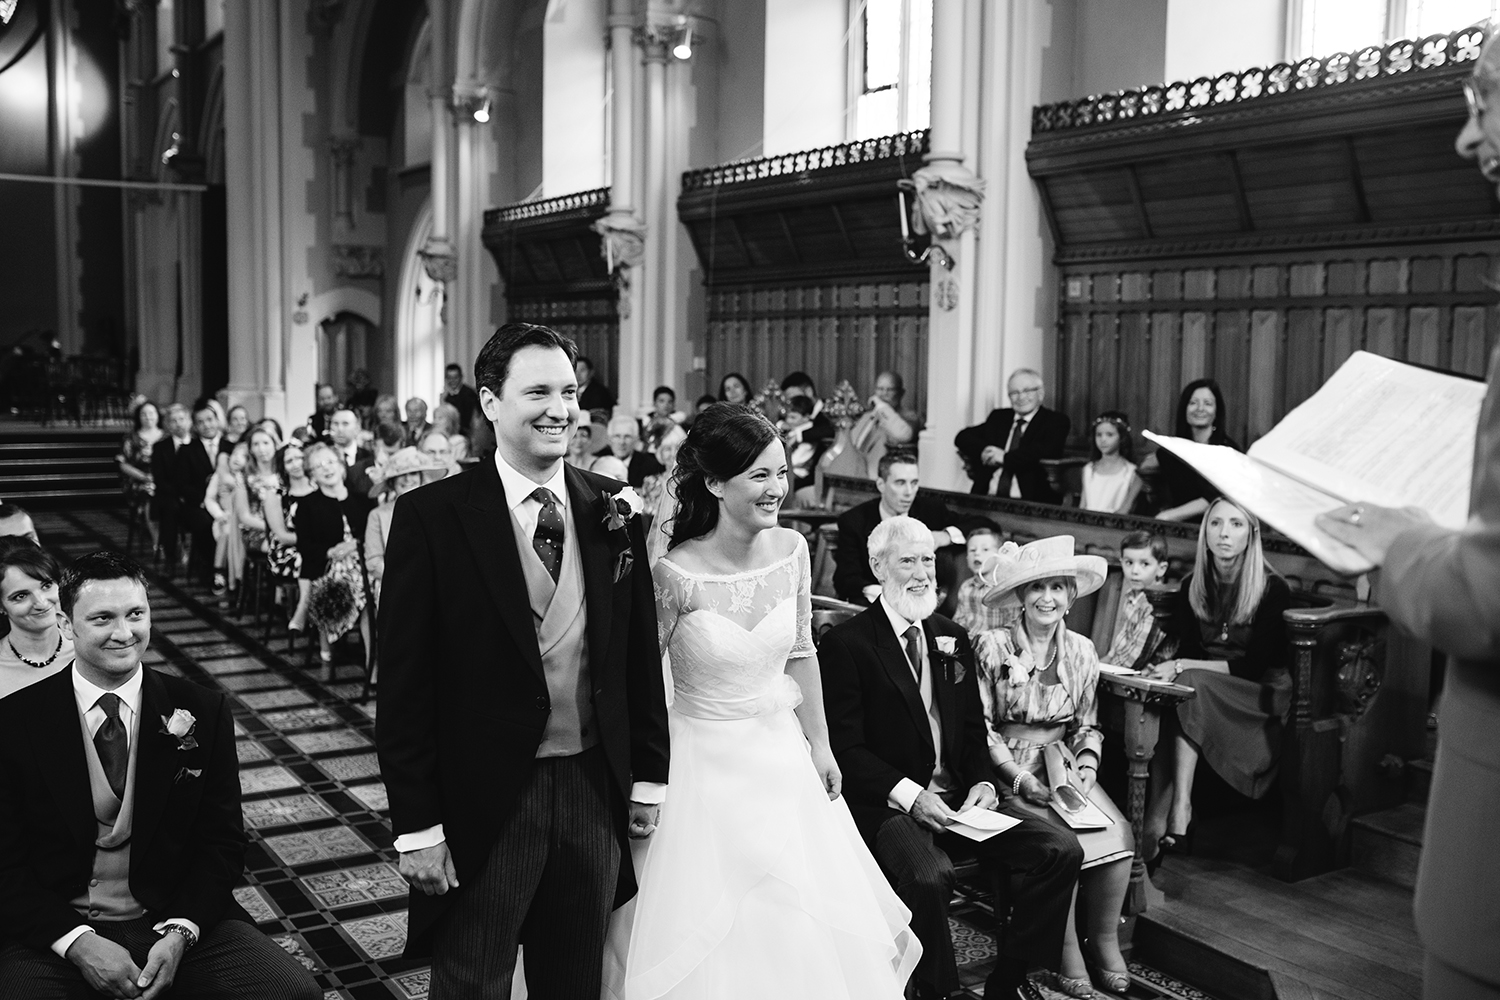 stanbrook-abbey-wedding-photographer-worcester-027.jpg